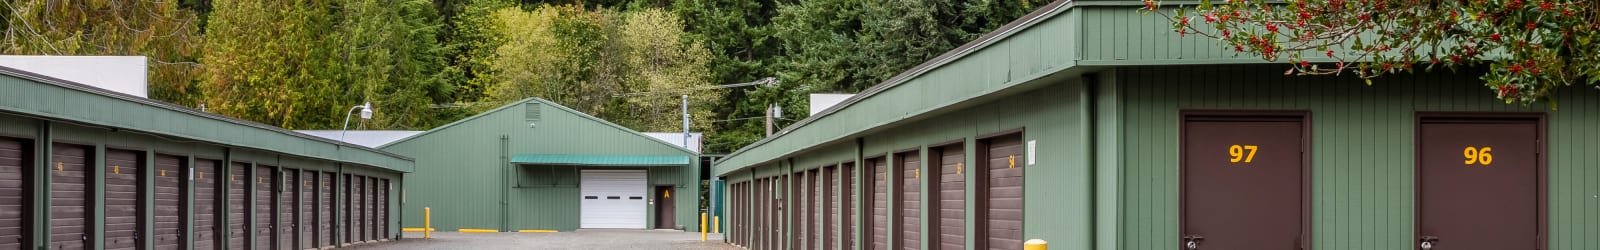 Photos of Bainbridge North Storage in Bainbridge Island, Washington.